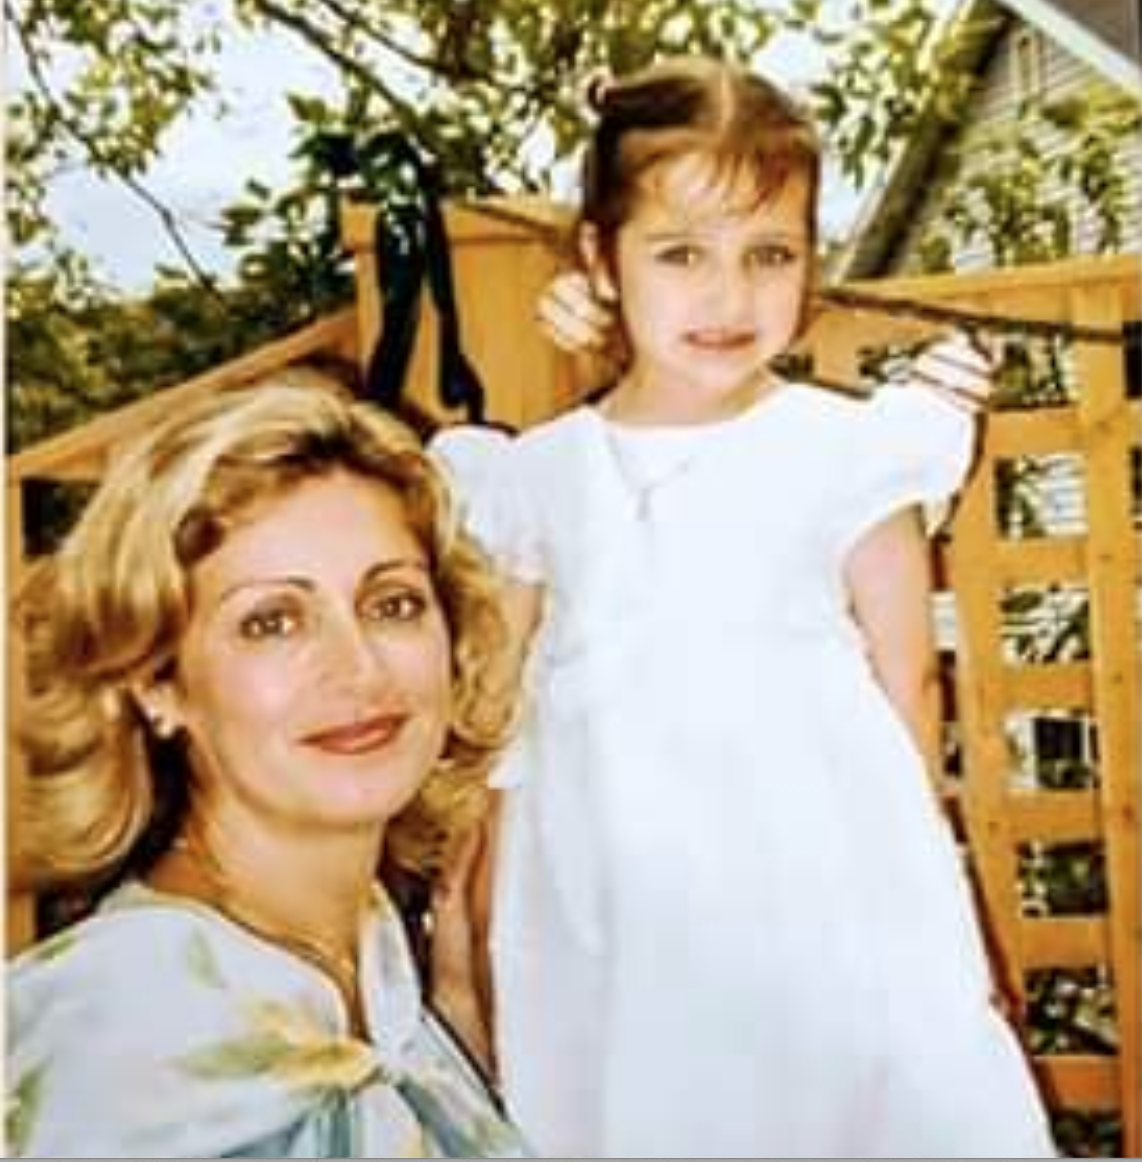 Mother and daughter vintage photo